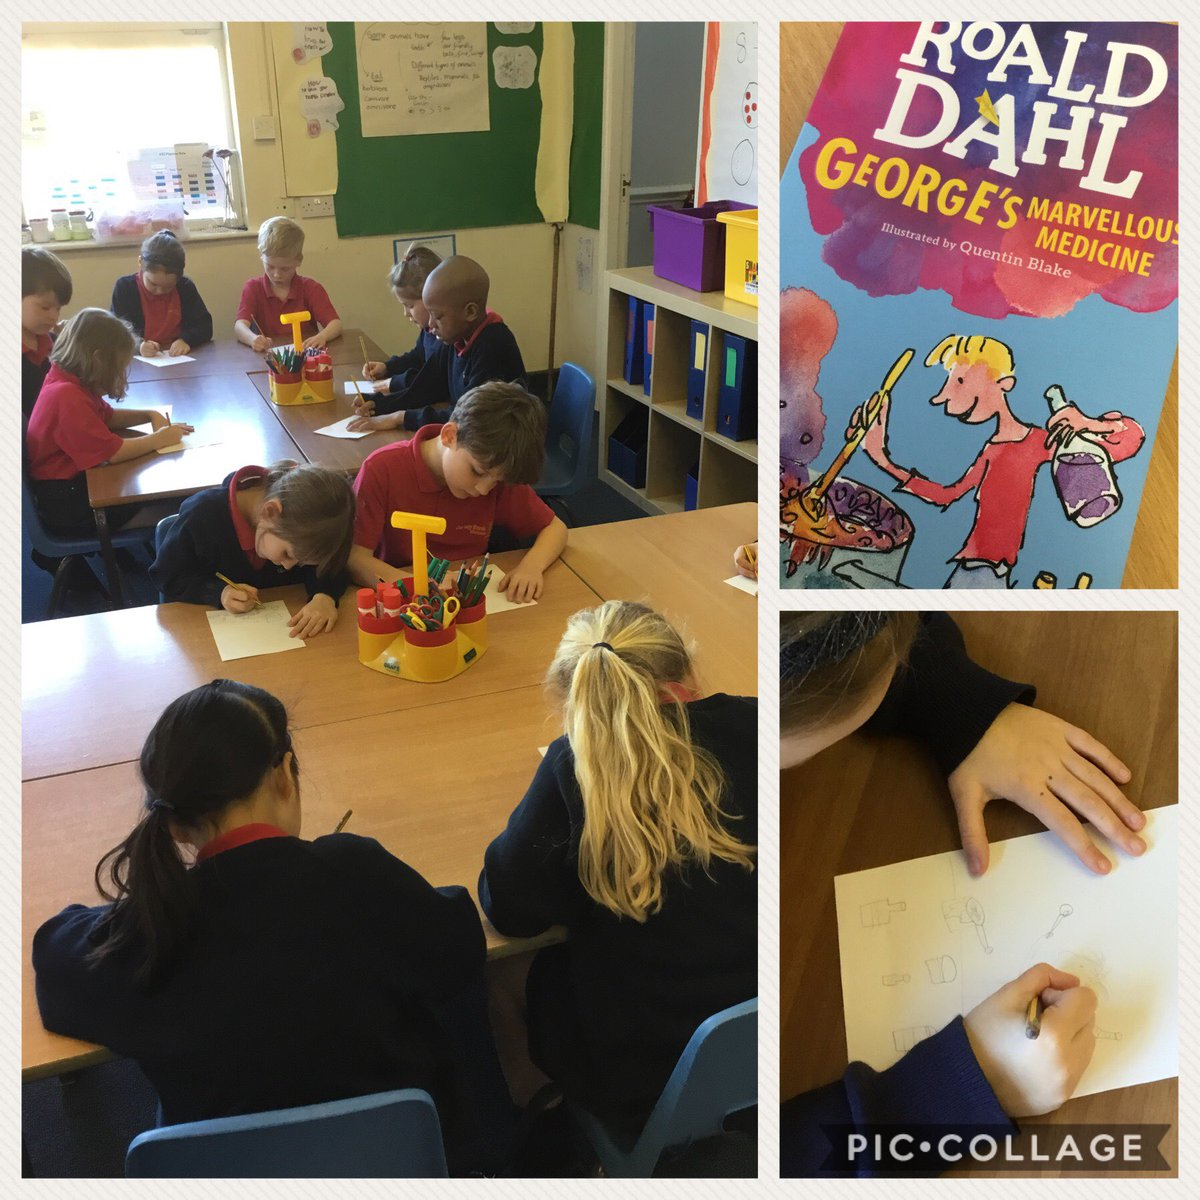 test Twitter Media - Year 2 are having a lovely afternoon creating our own front covers for George's Marvellous Medicine! https://t.co/l1HlLpOSAS